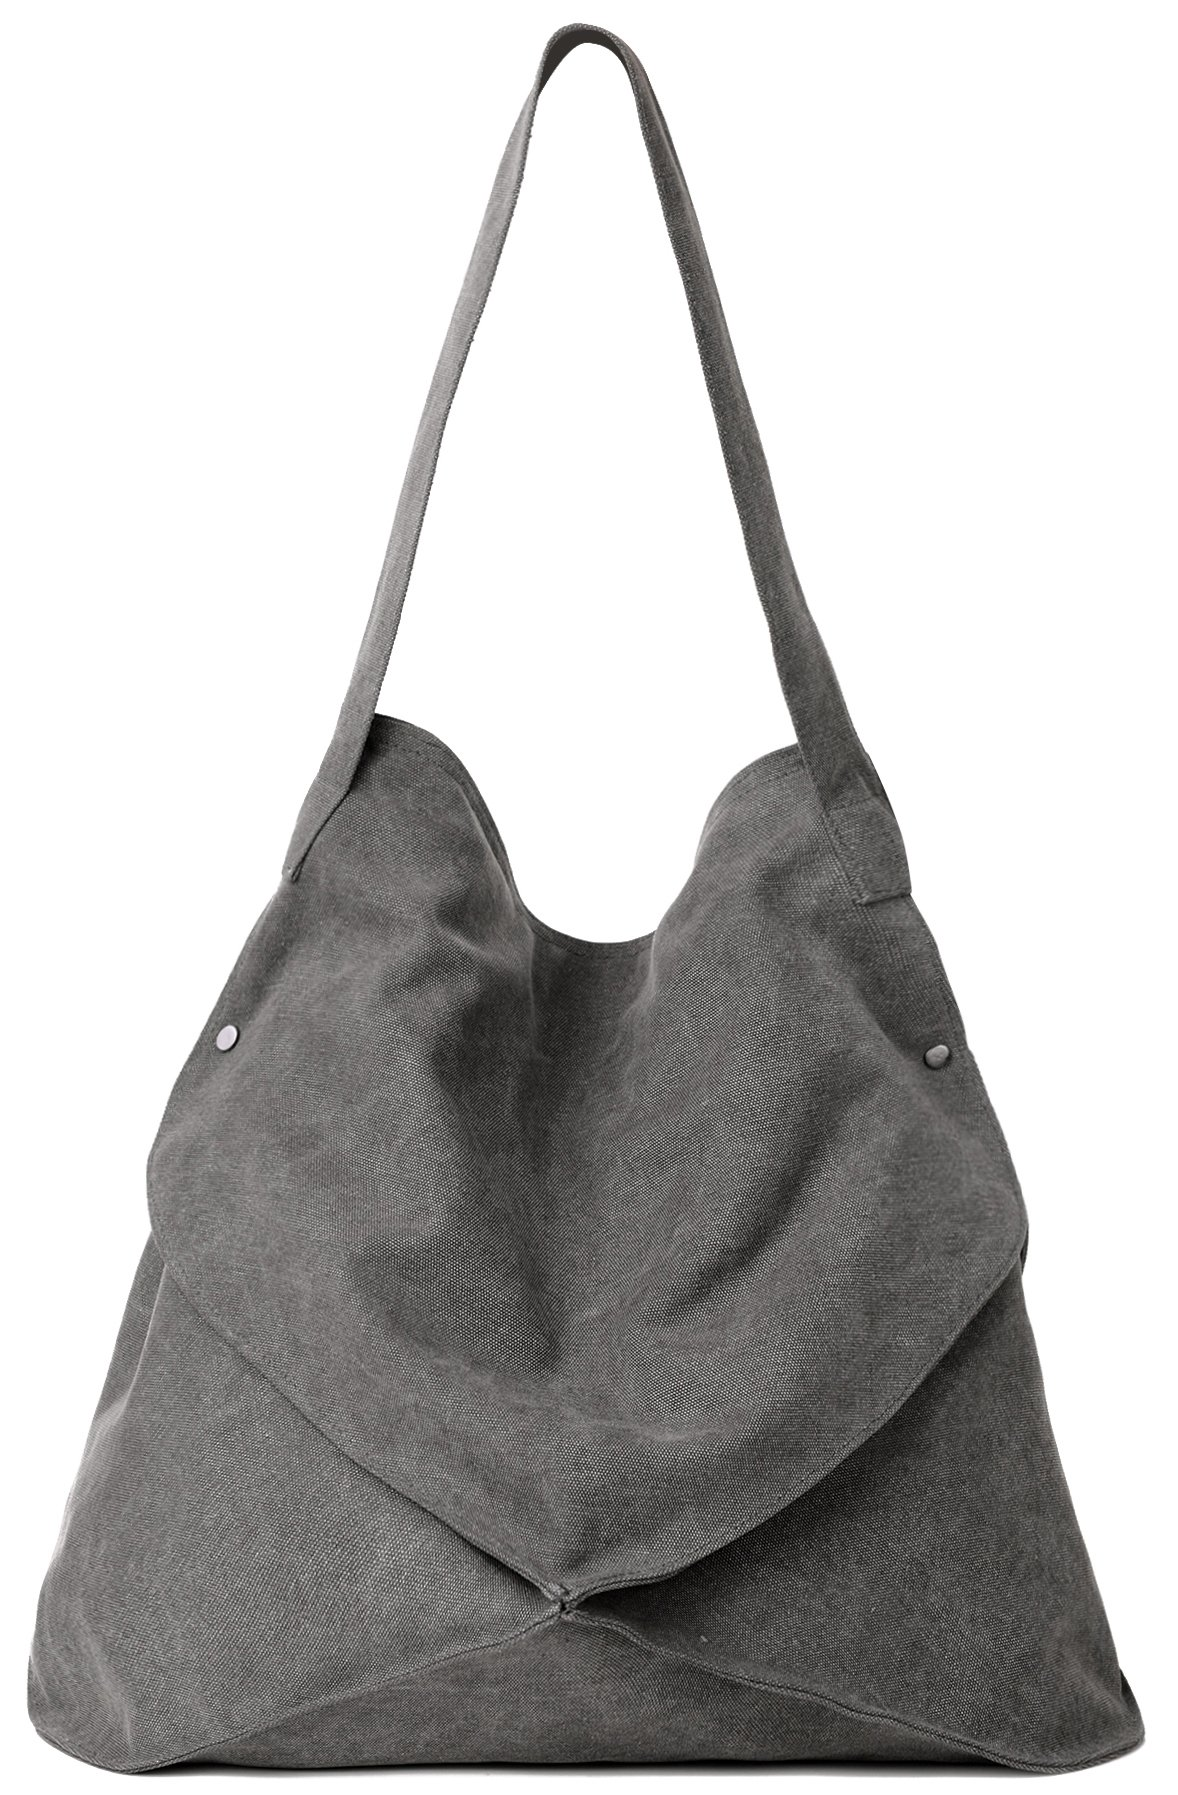 Women's Anti-Theft Cotton Canvas Handbag Shoulder Bags Tote Purses (Grey)